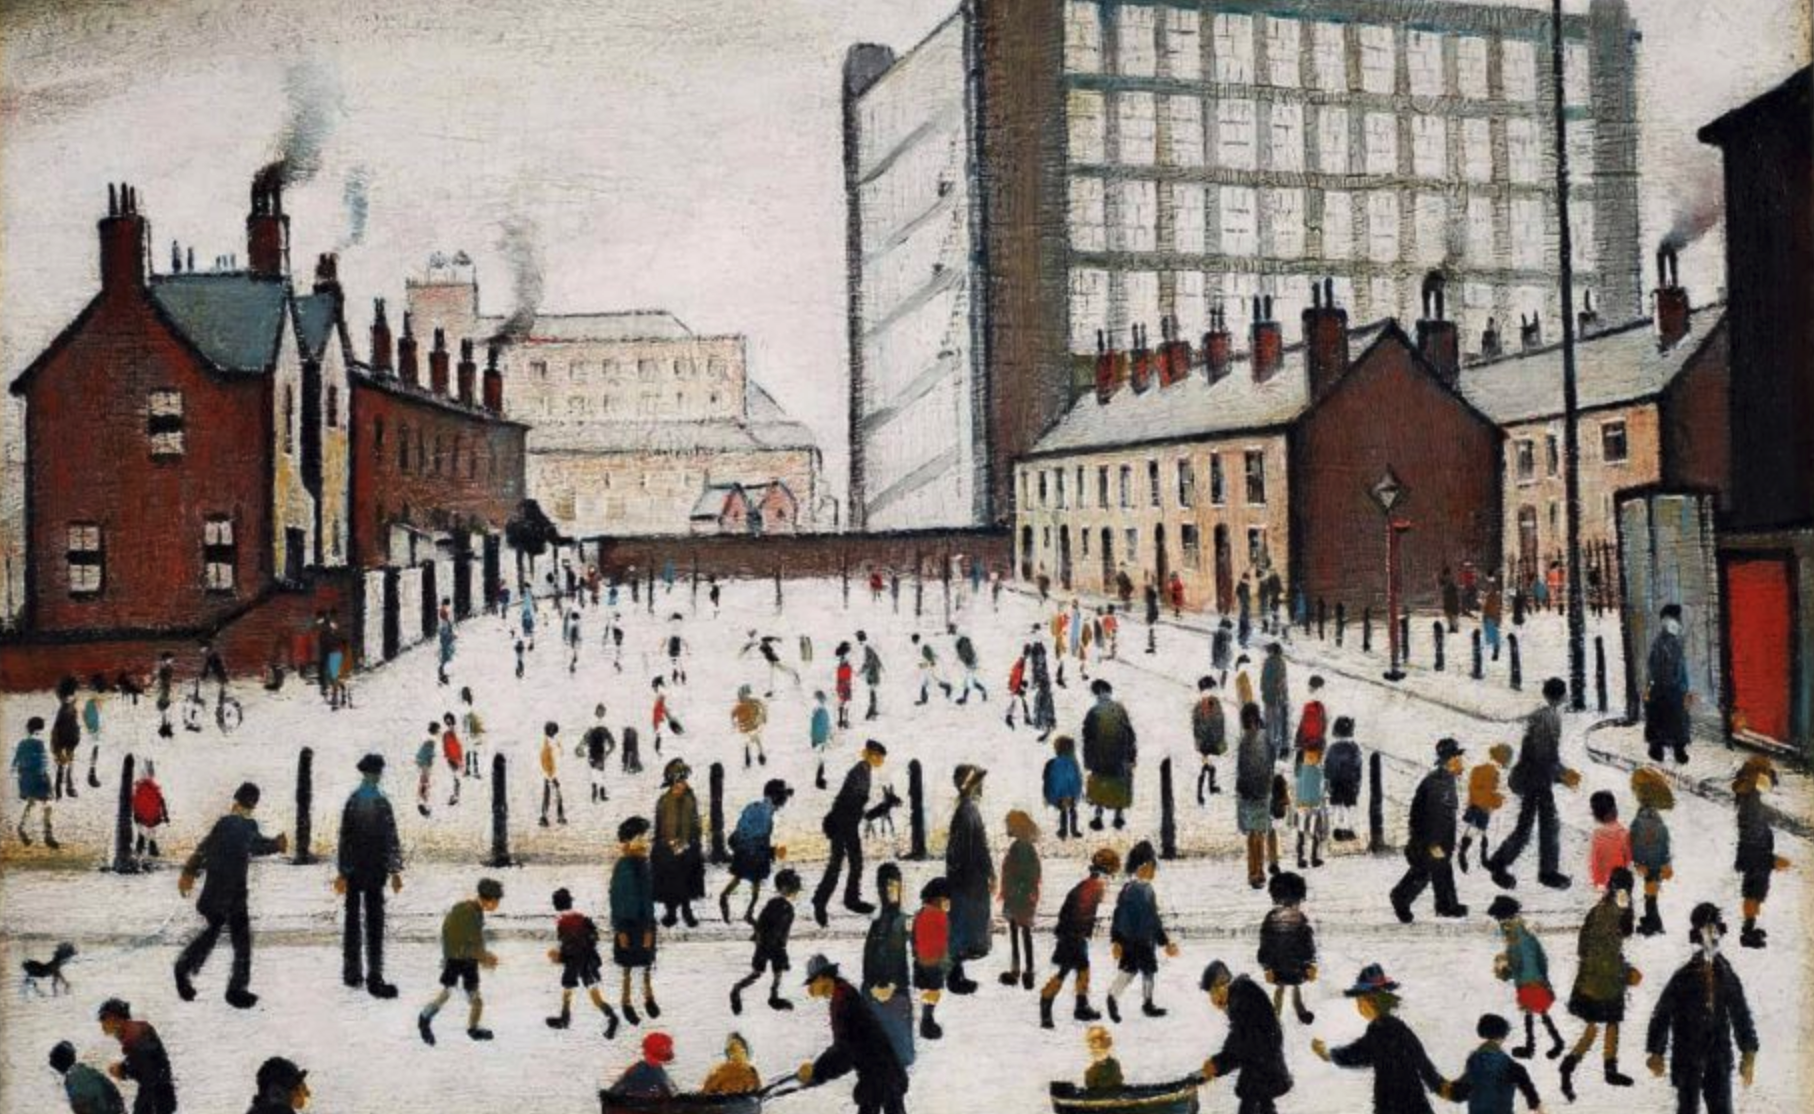 The Mill, Pendlebury (1943) by Laurence Stephen Lowry (1887 - 1976), English artist.